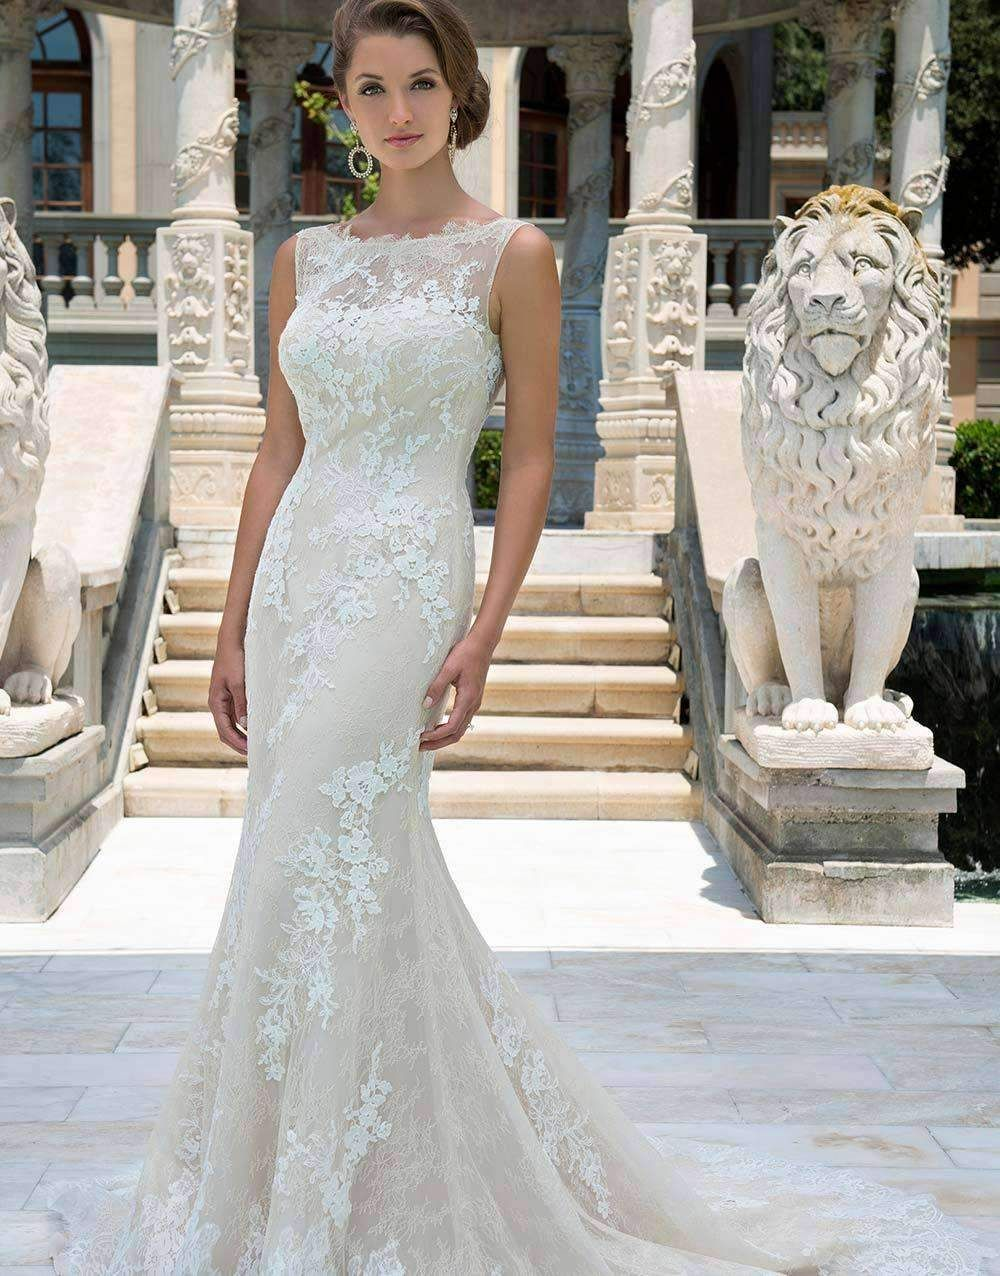 5f75e4bec1b2b VE8302N - Venus Bridal Gown - Freya - Wedding Dress - Adore Bridal and  Occasion Wear